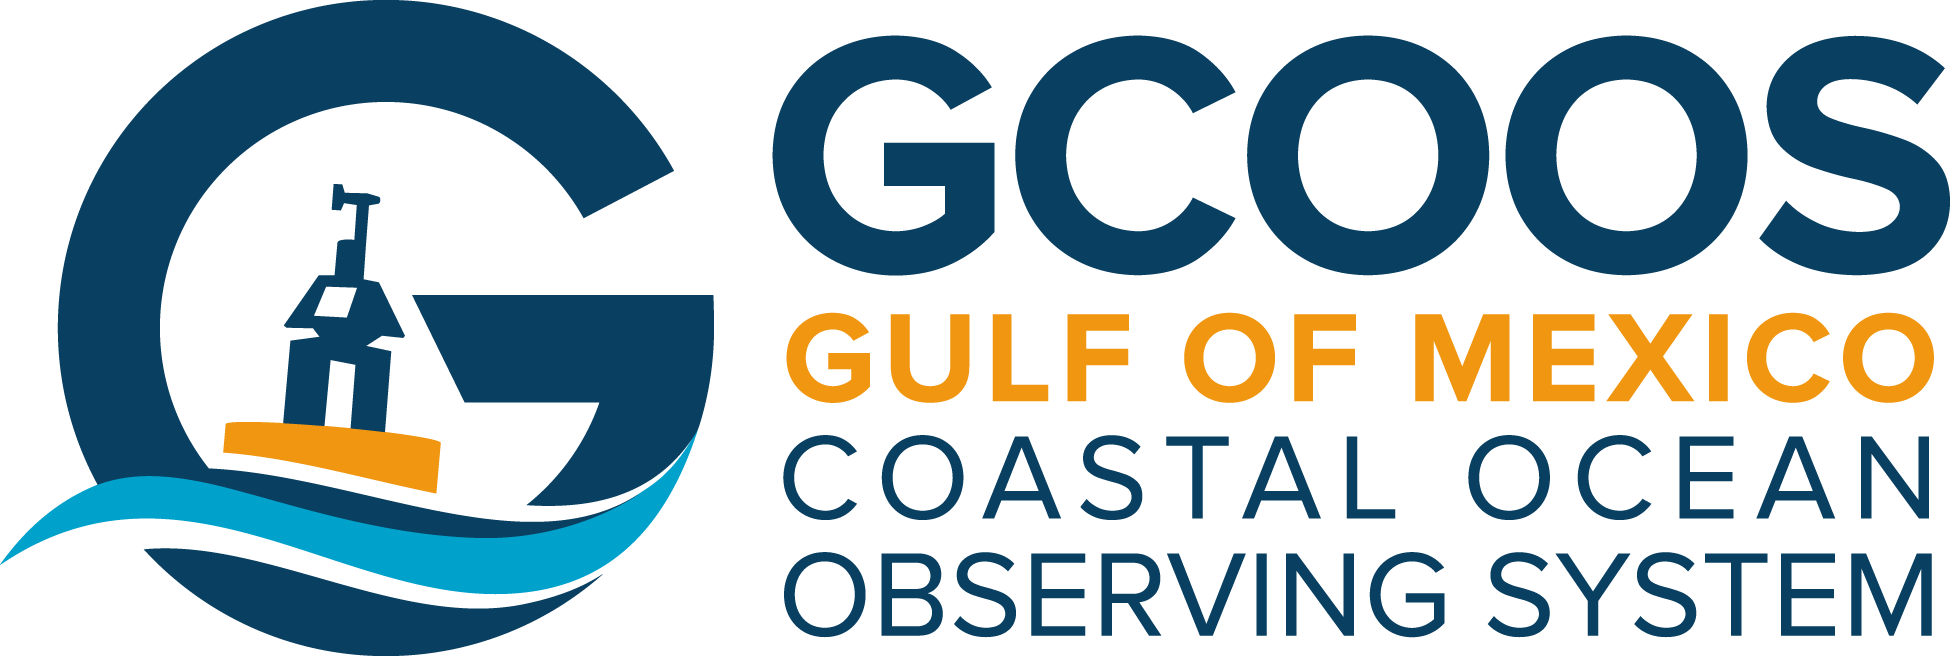 Gulf of Mexico Coastal Ocean Observing System-Regional Association (GCOOS-RA)